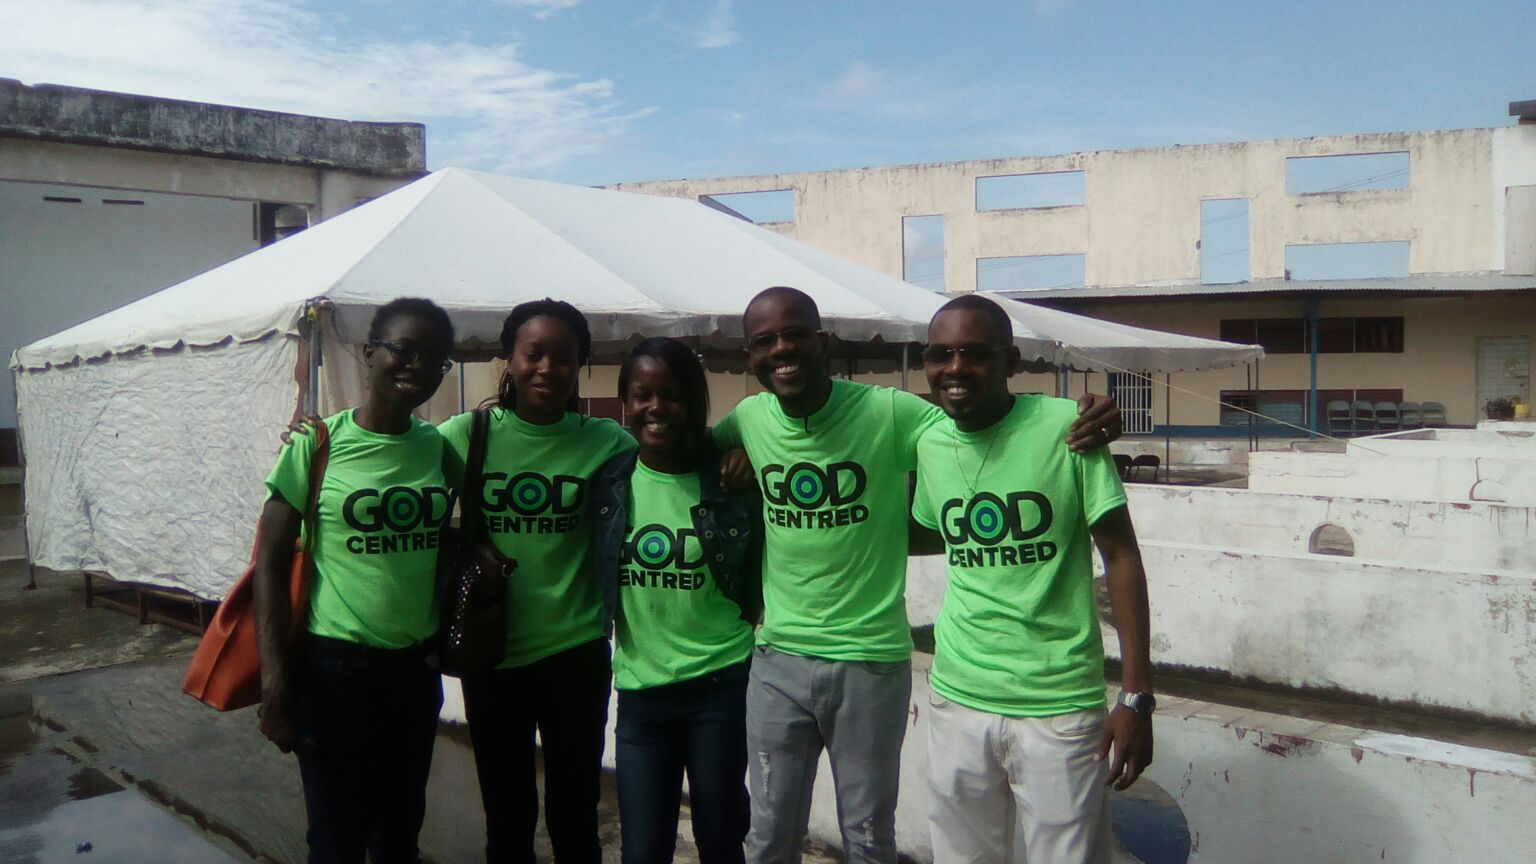 God Centred School Tour